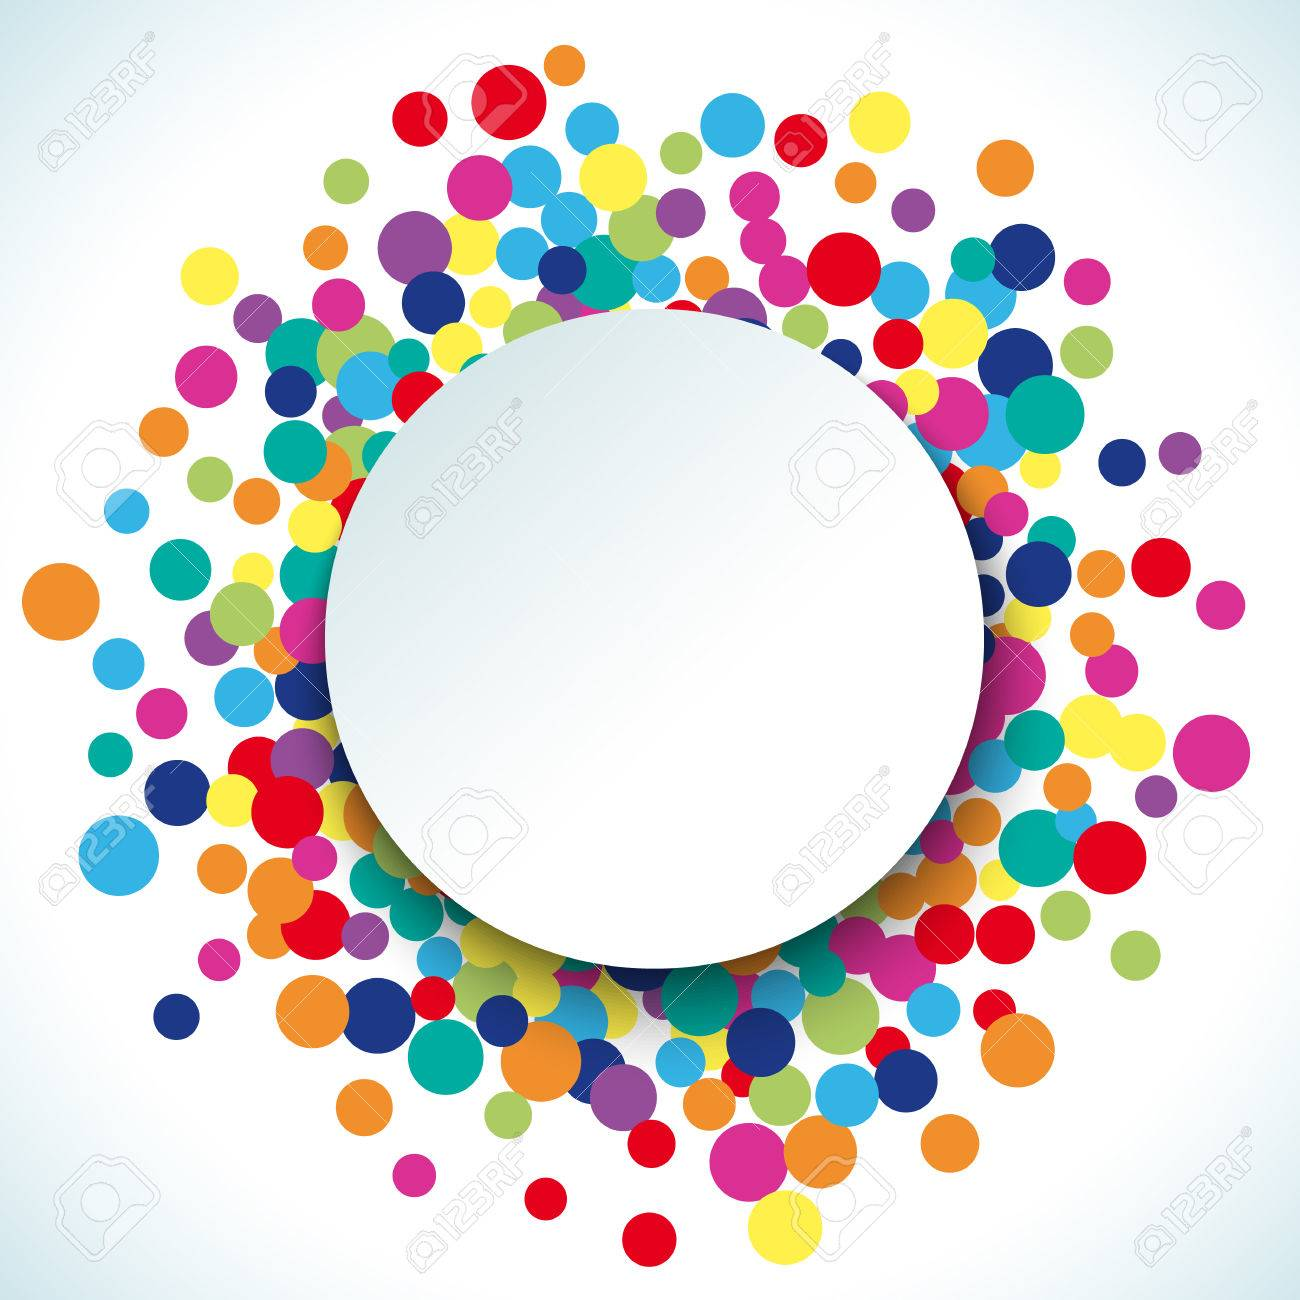 Colorful Abstract Dot Background. Illustration For Bright Design... Royalty  Free Cliparts, Vectors, And Stock Illustration. Image 57583897.